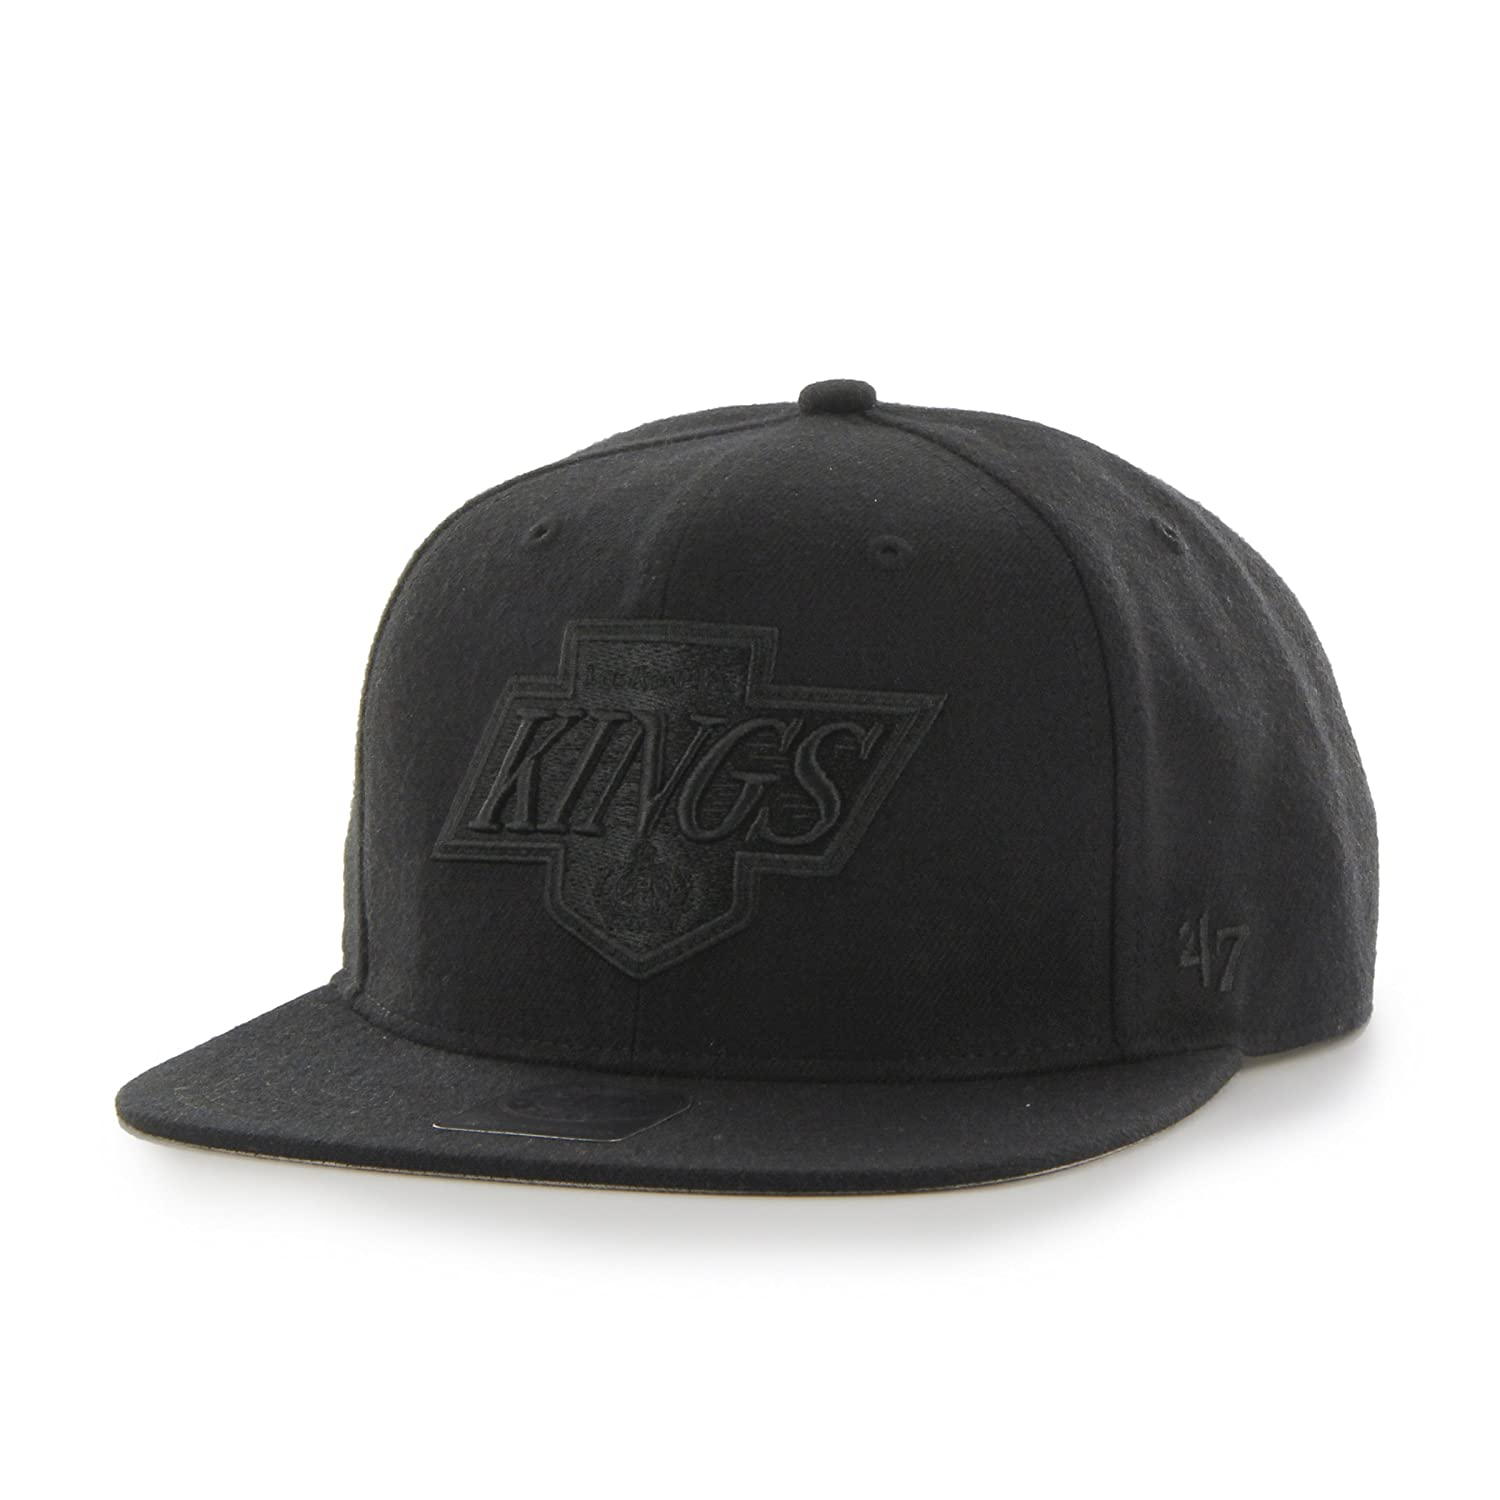 '47 Los Angeles Kings Black Tonal Sure Shot Adjustable Snapback Cap Brand NHL Flat Bill Baseball Hat